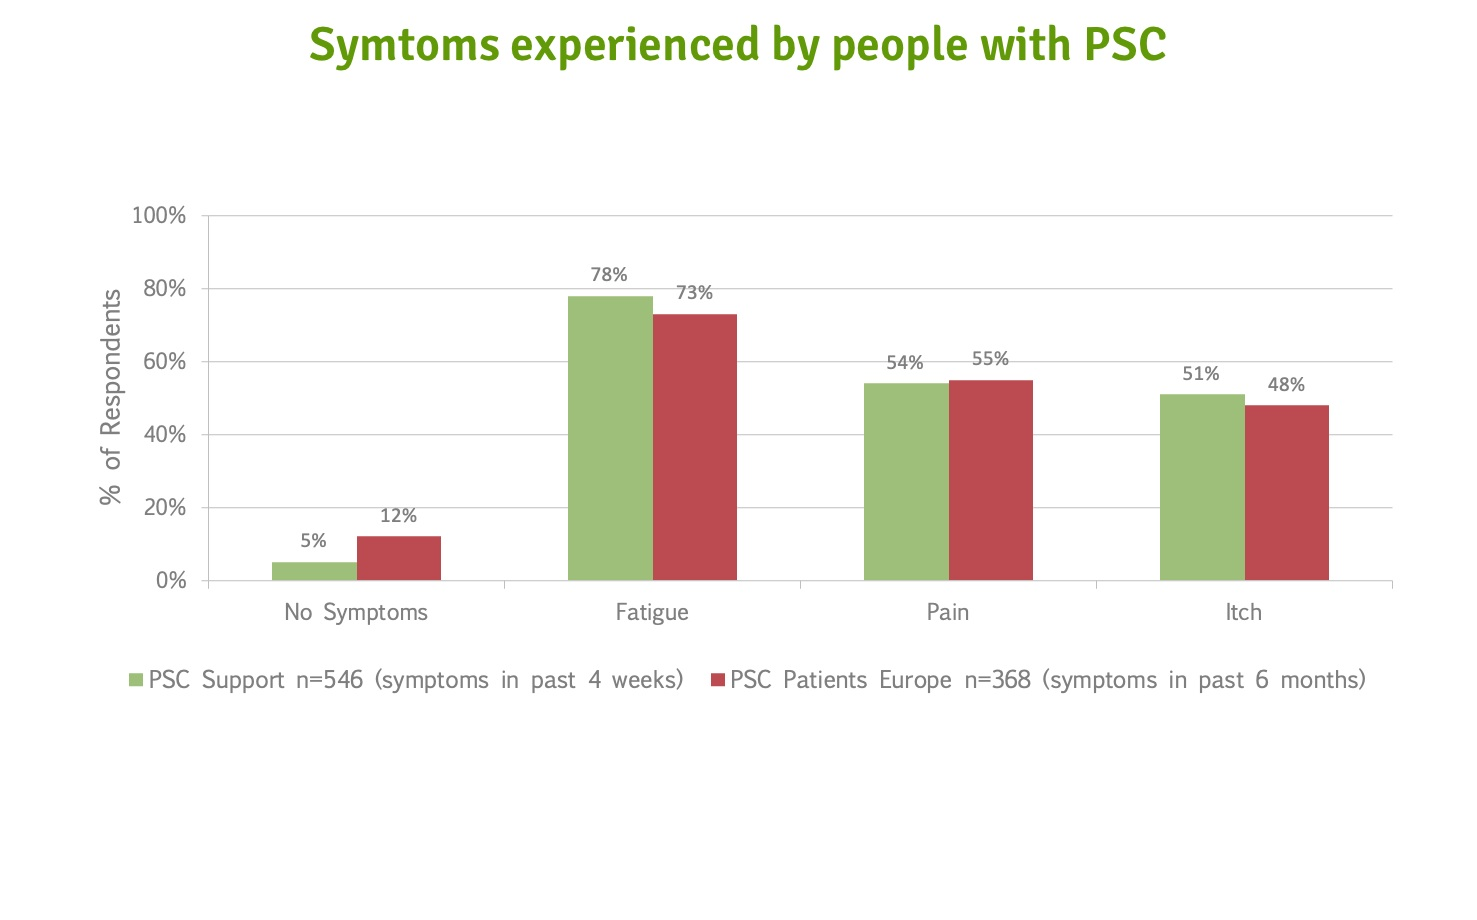 Daily Symptoms PSC Support